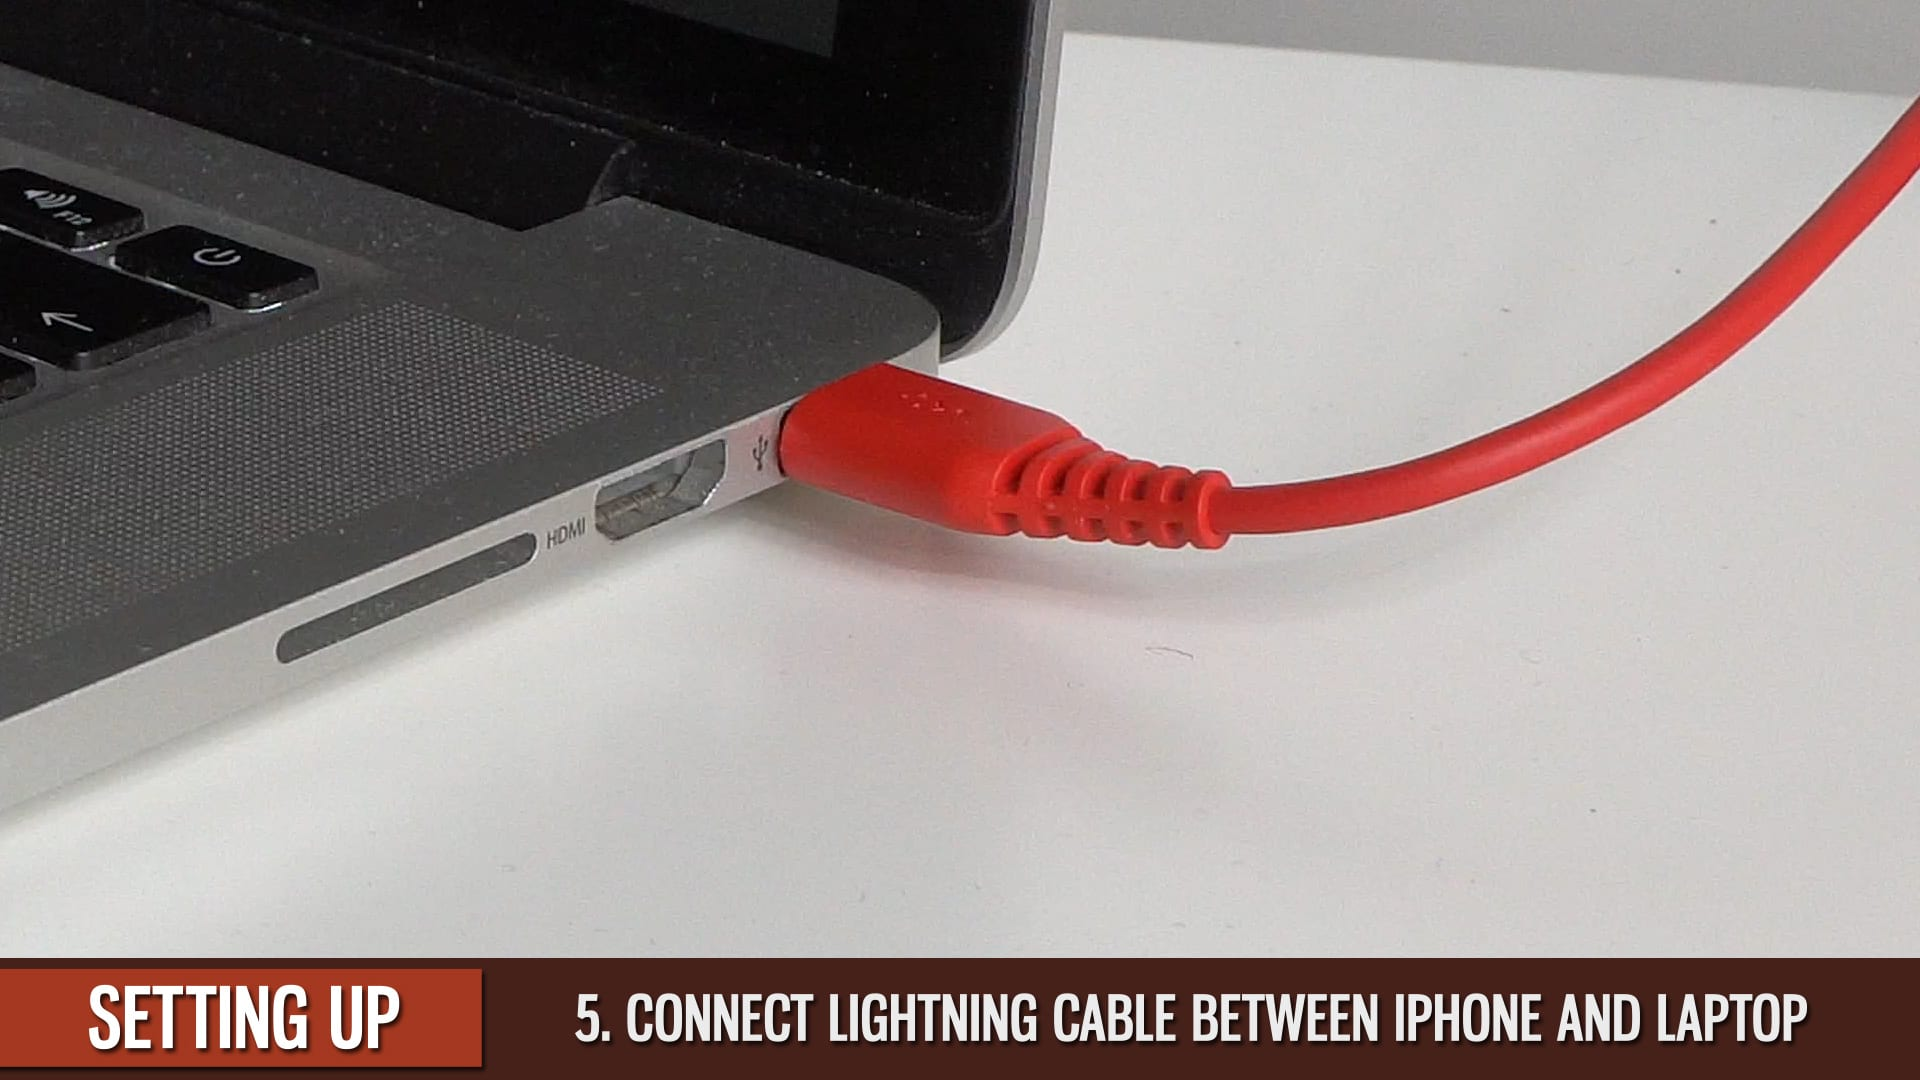 IPhone-Overhead-Connect Lightning-Cable-to-Laptop